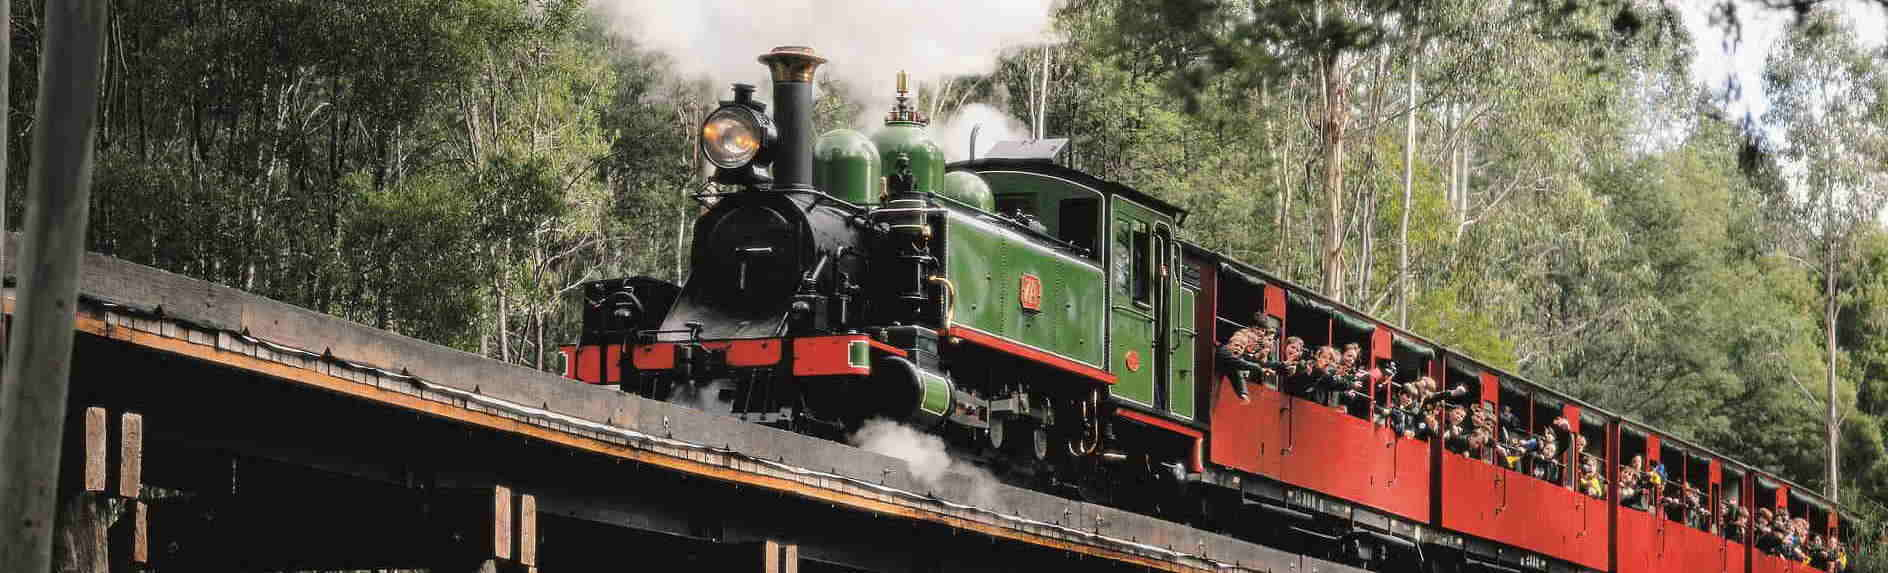 Puffing Billy Tours